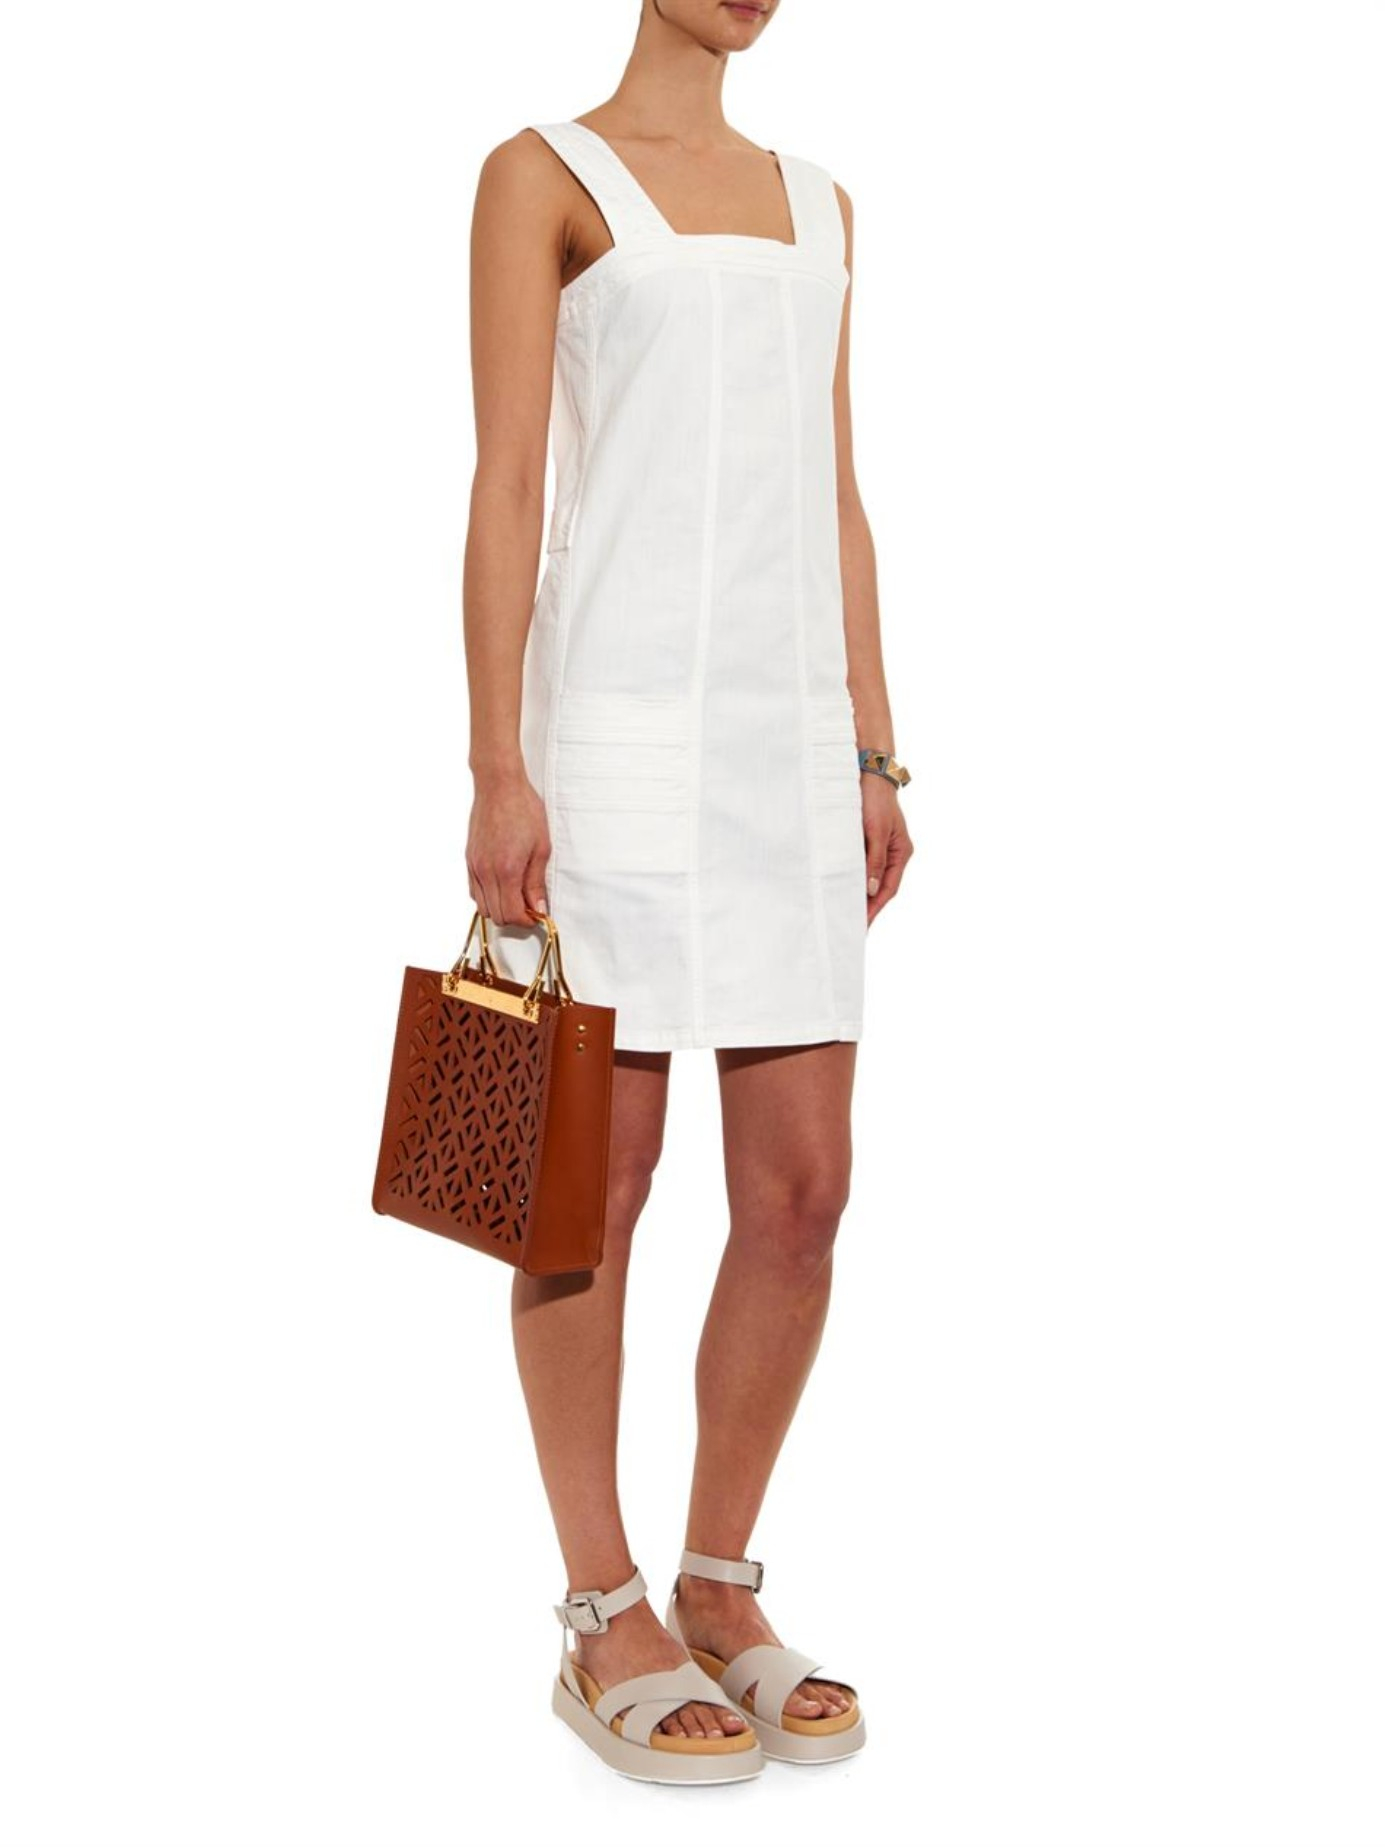 Pinafore dress - Brown See By Chloé Free Shipping Lowest Price Sast Cheap Price Clearance Official KI3x02a